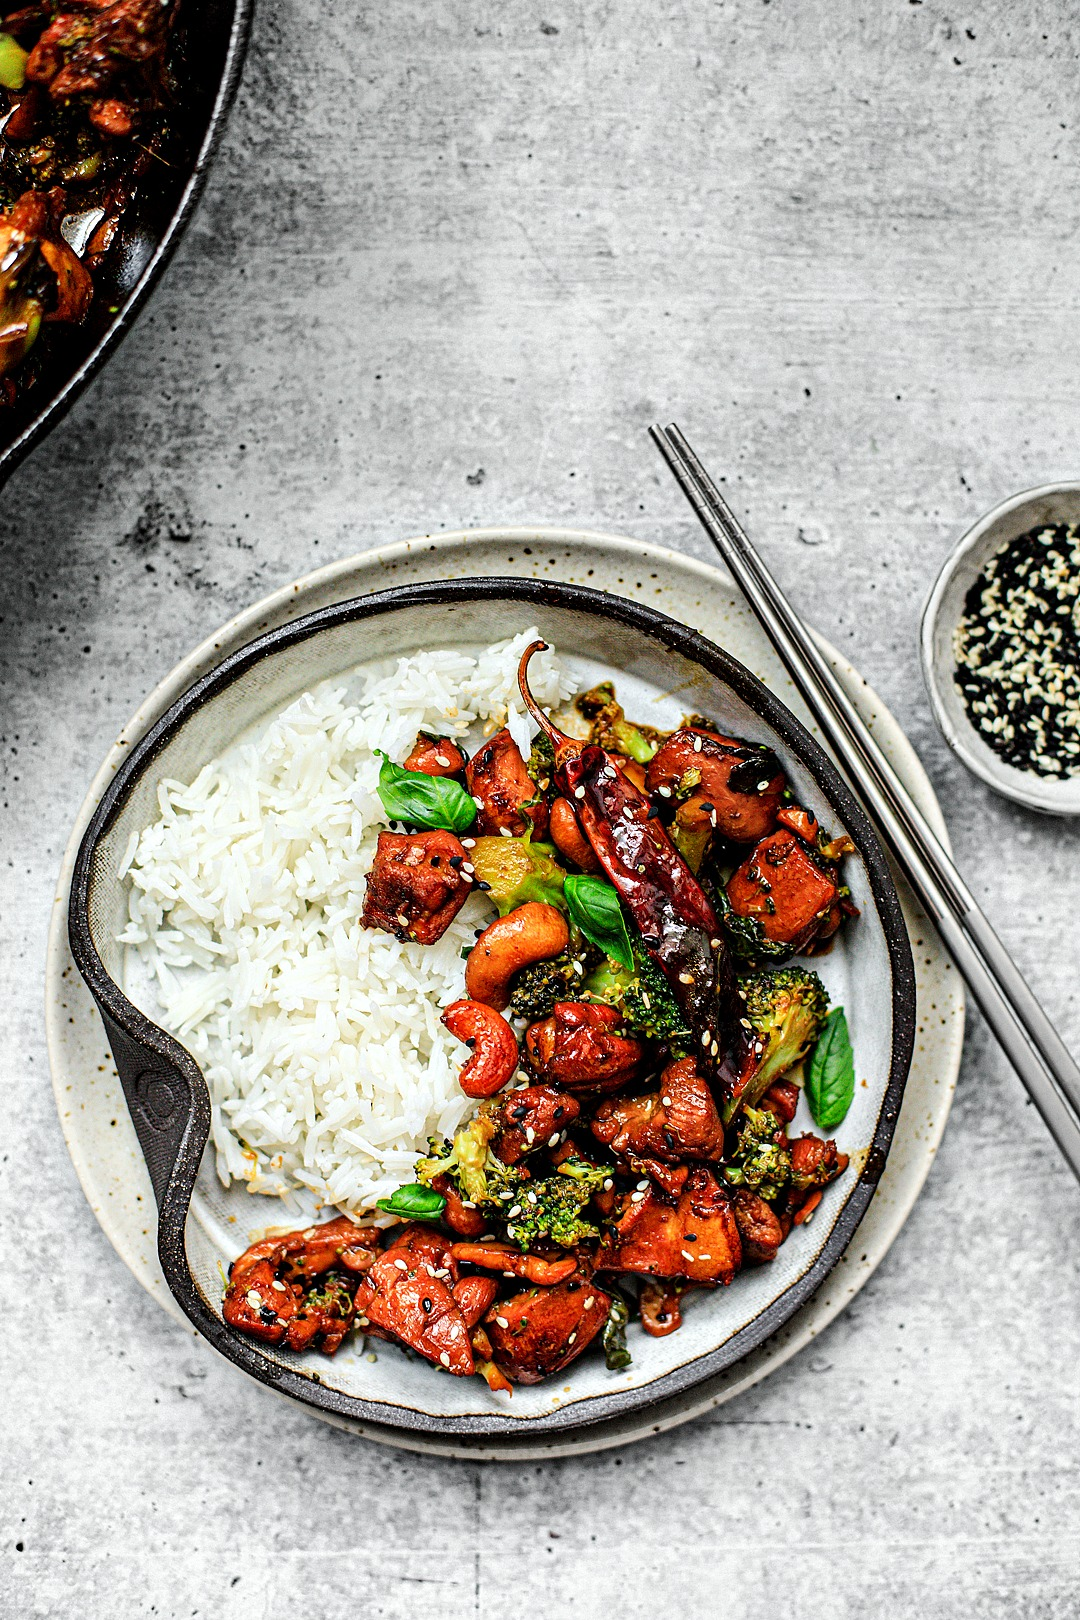 Plate of spicy sesame chicken with rice and chopsticks.